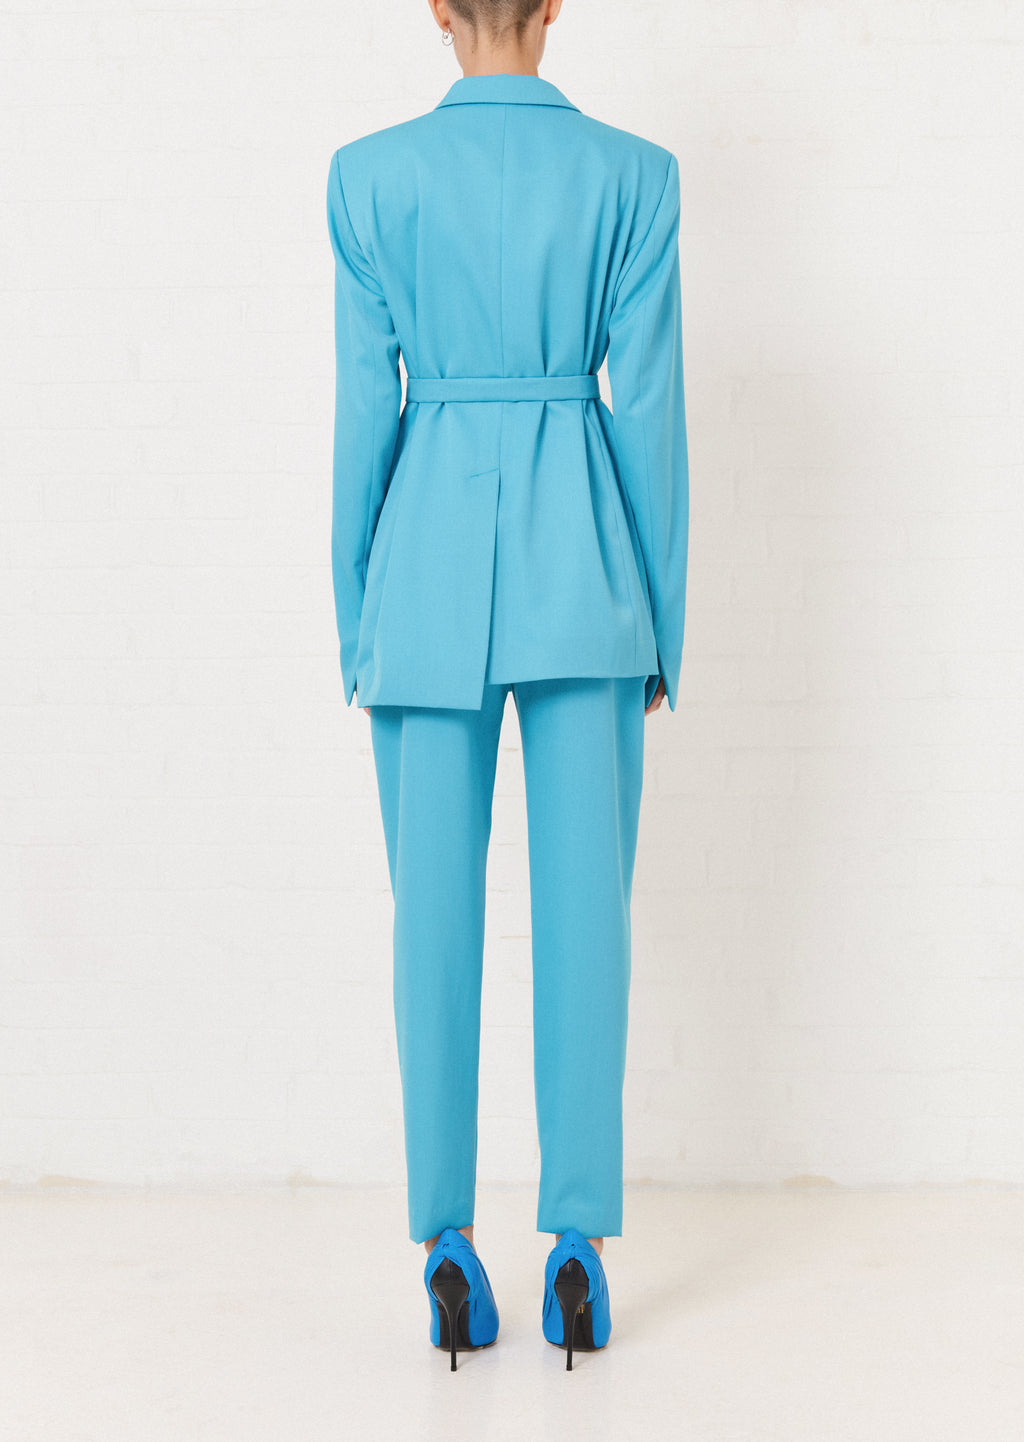 Turquoise Tailored Suit Jacket